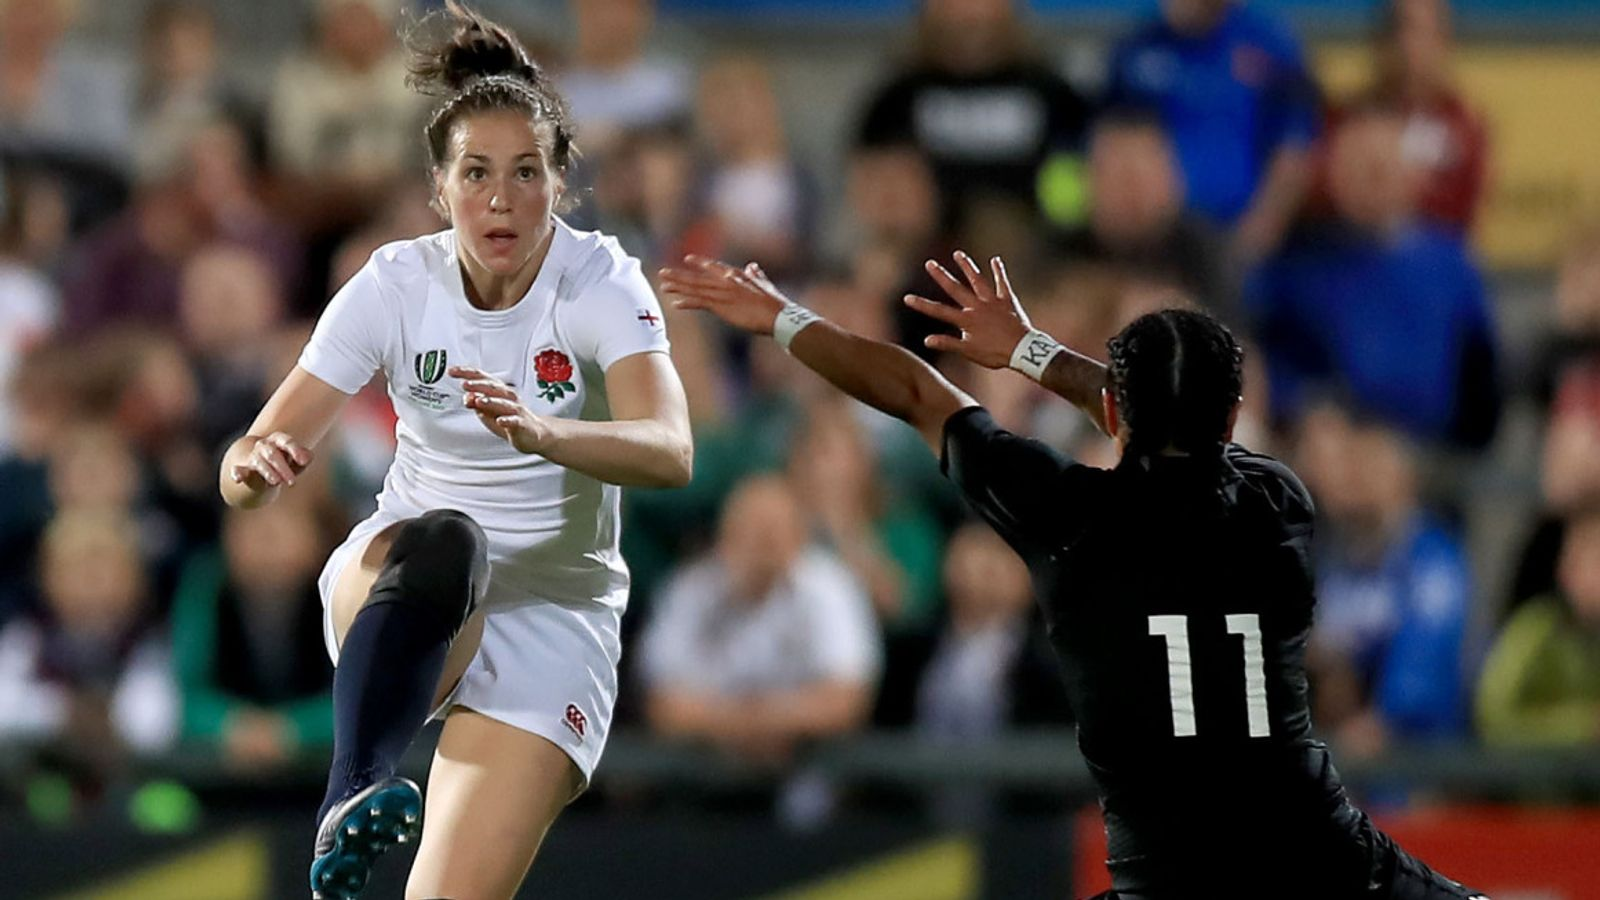 Budget 2021: Government backs UK bids to host 2025 Women's Rugby World Cup and 2026 Tour de France Grand Depart